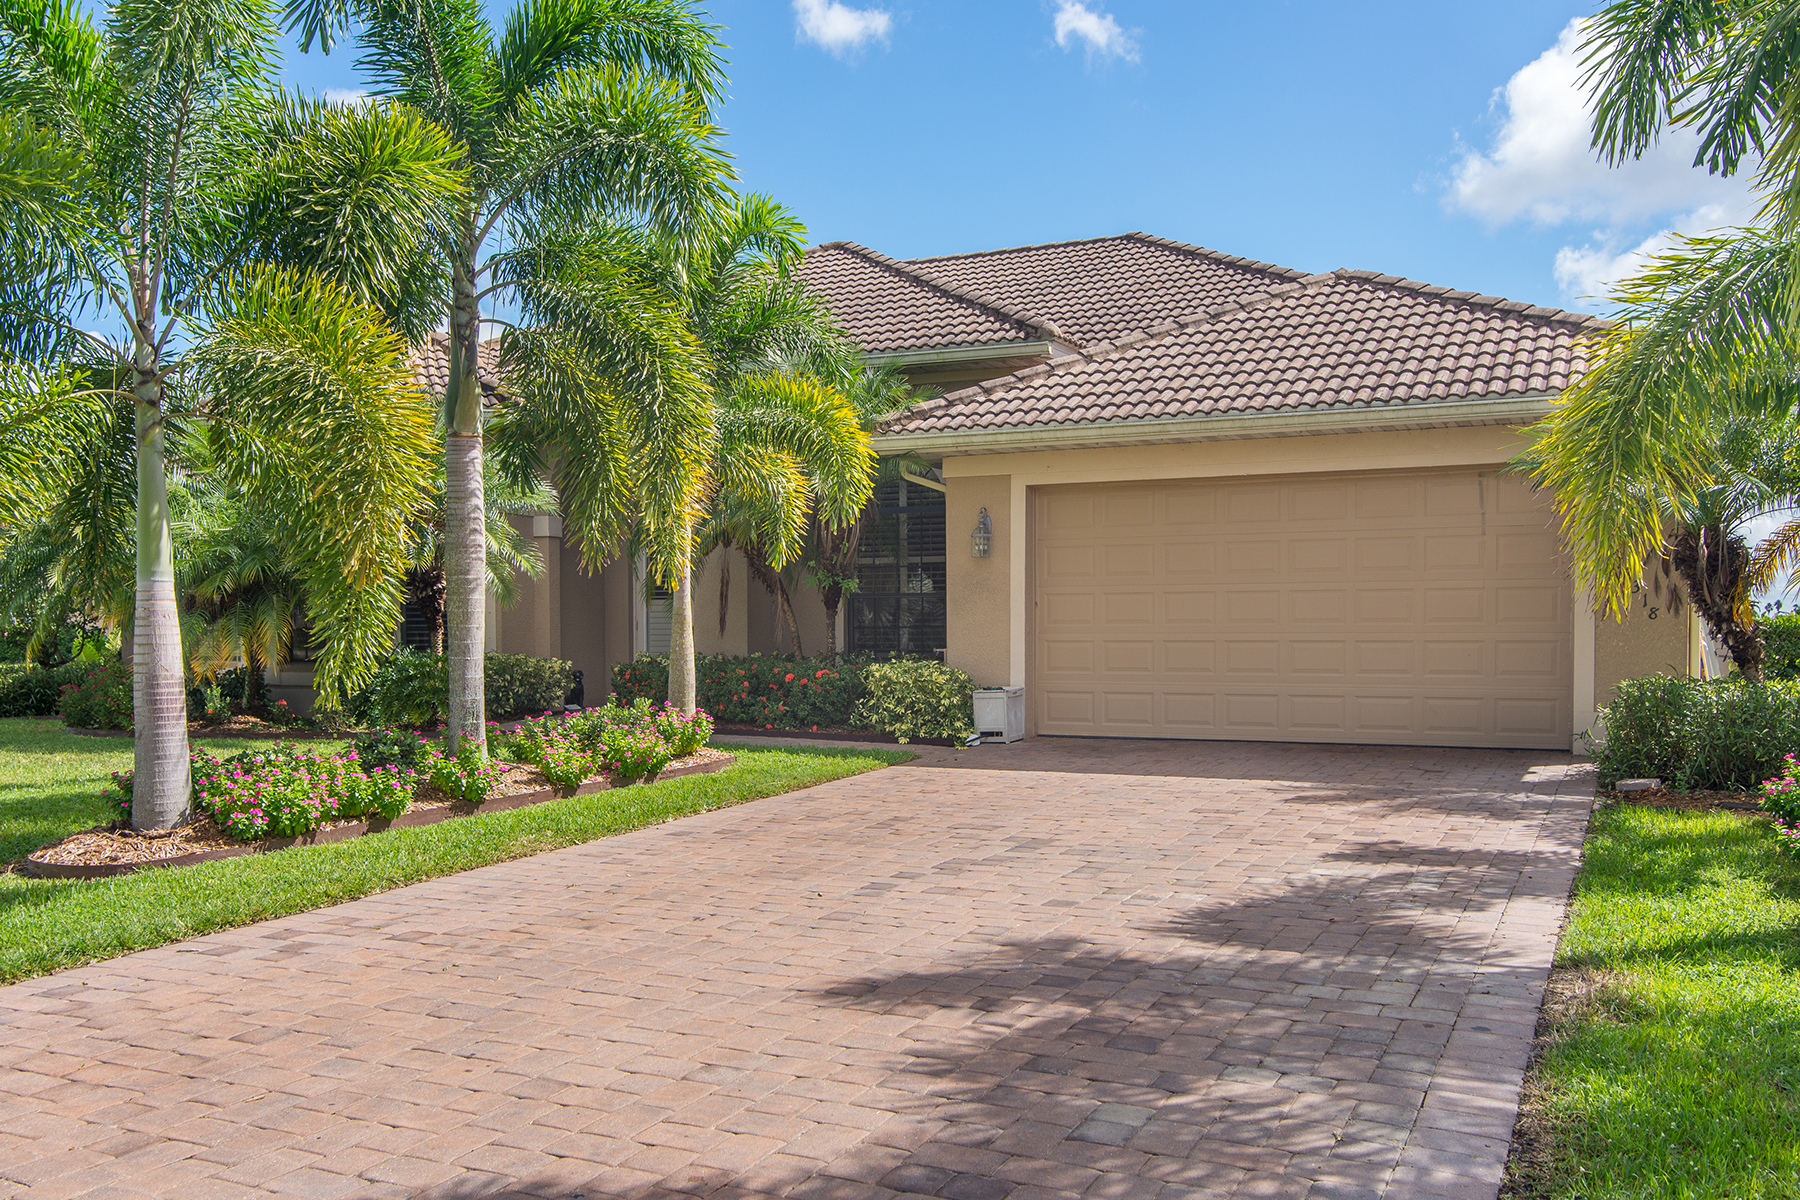 Einfamilienhaus für Verkauf beim ROYAL PALM GOLF ESTATES - ROYAL HAMMOCK BLVD 18318 Royal Hammock Blvd Naples, Florida 34114 Vereinigte Staaten